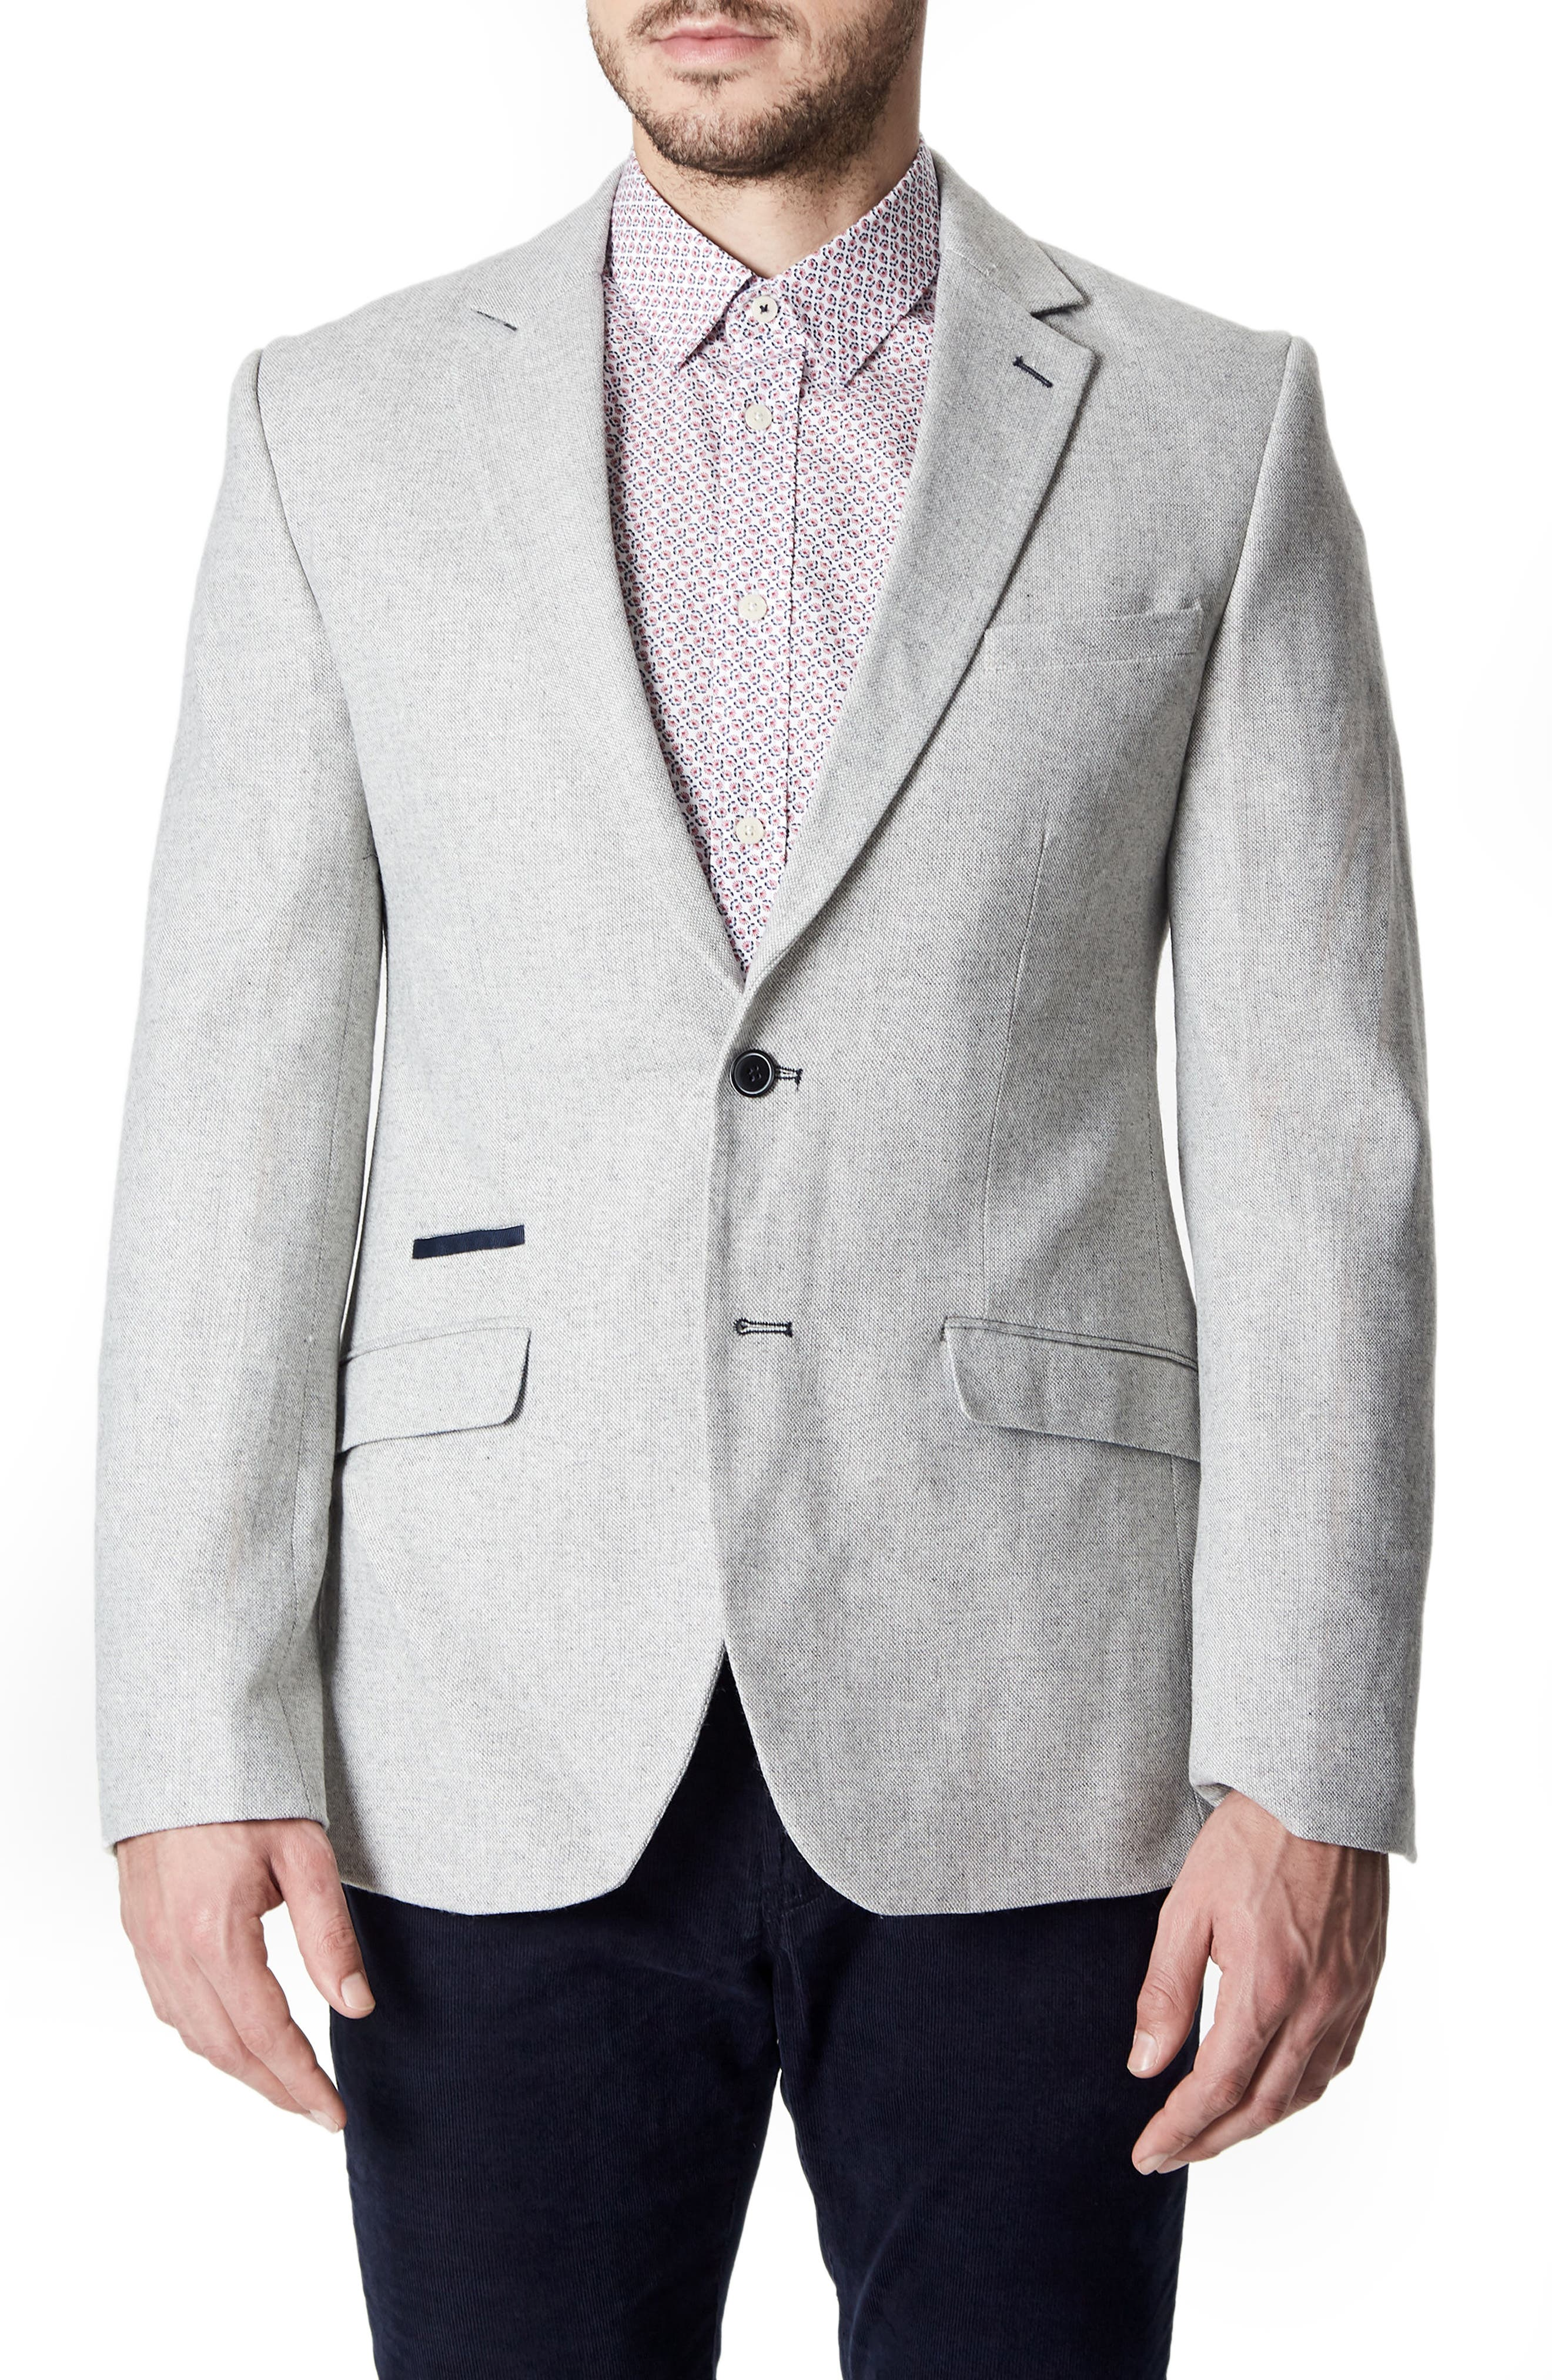 Main Image - 7 Diamonds Leece Casual Blazer